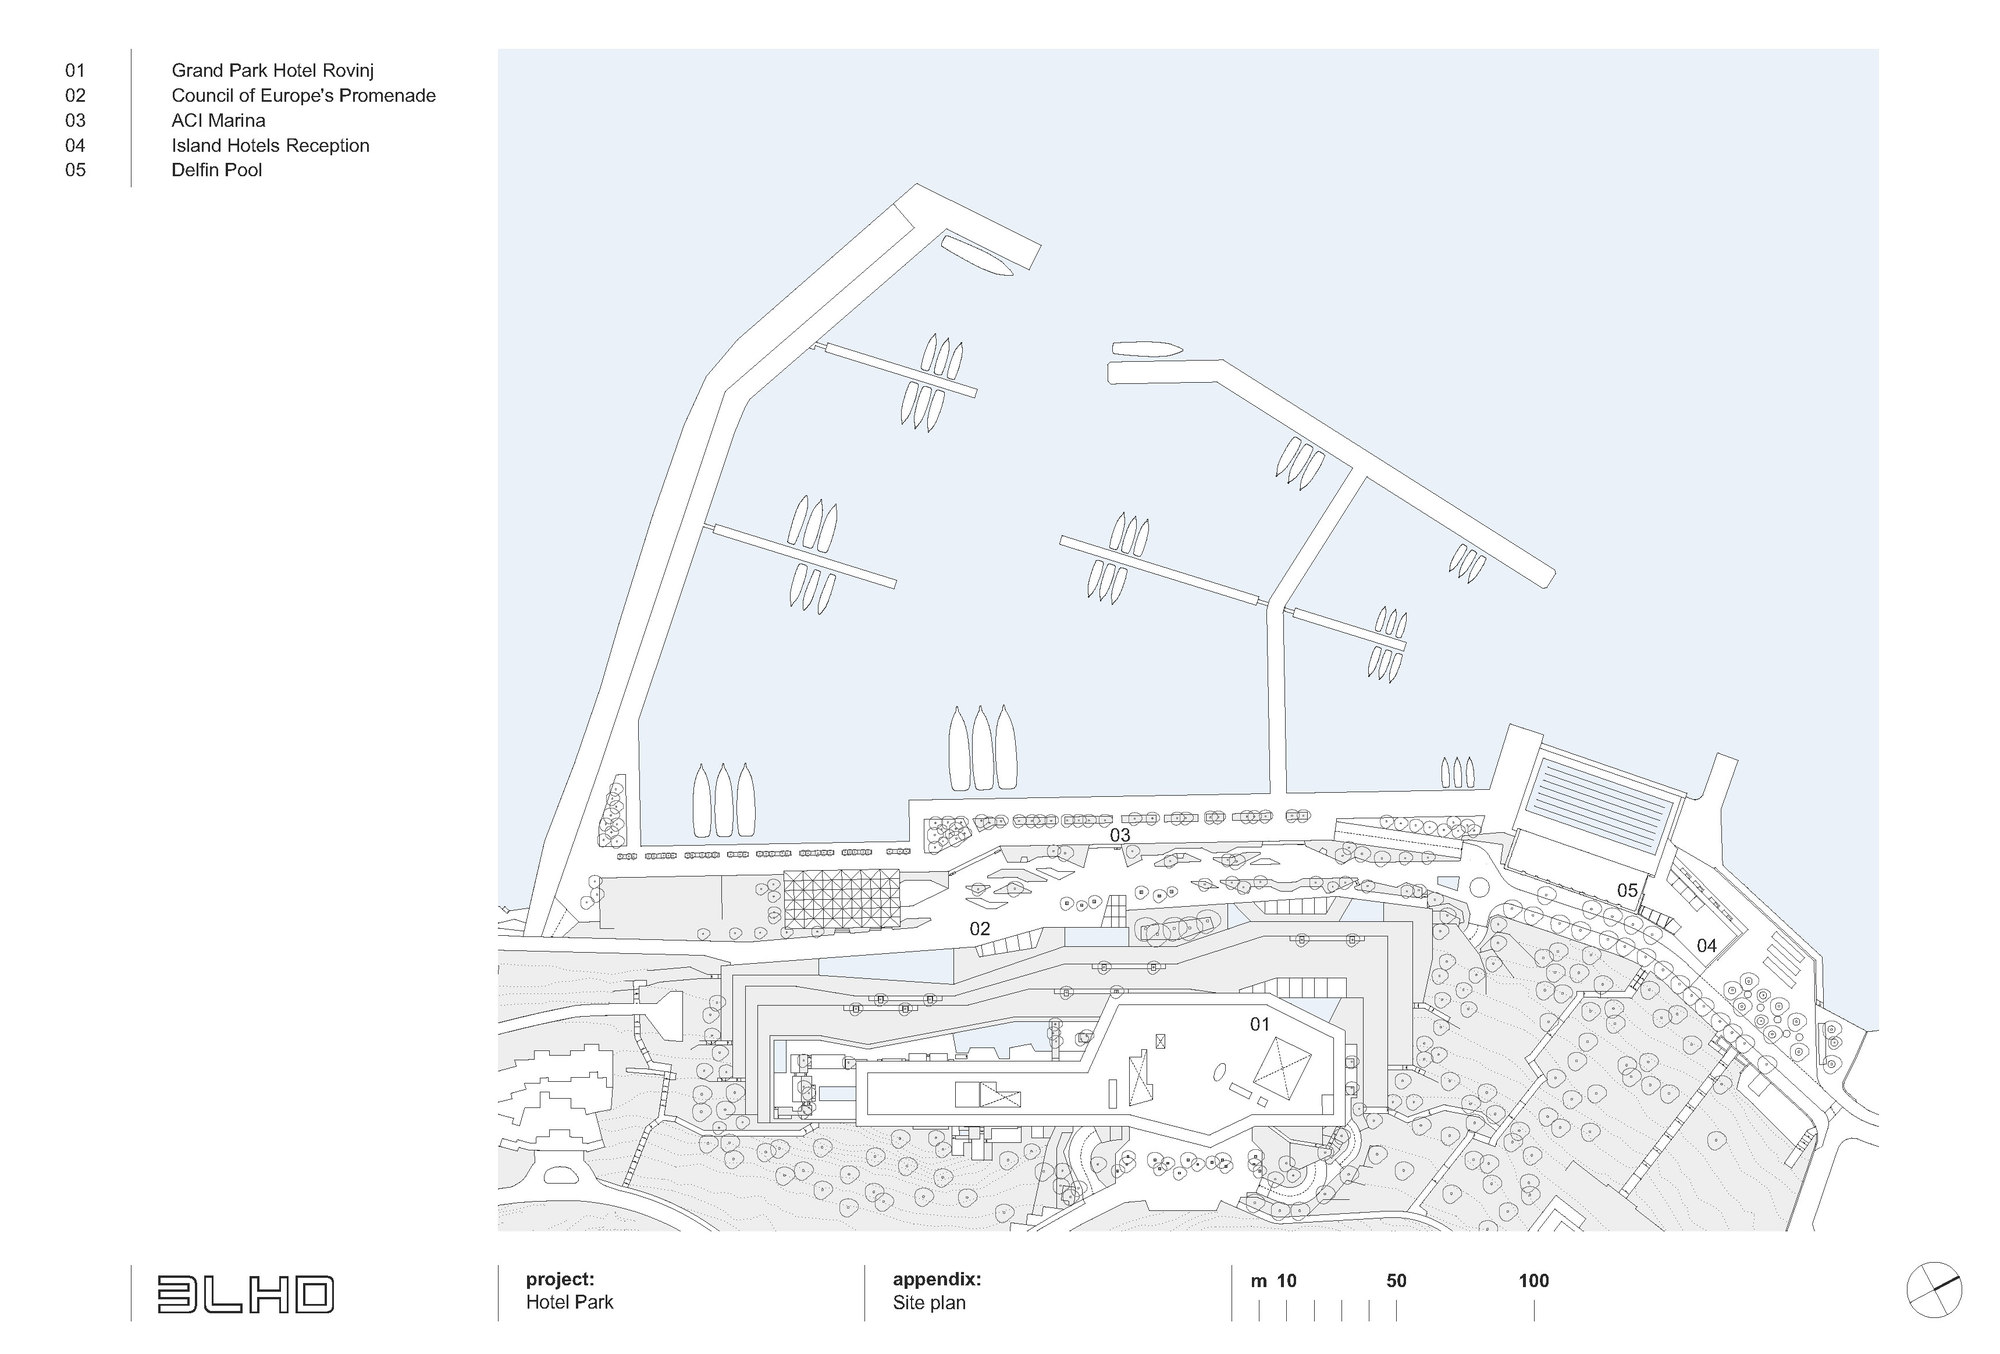 m1 _3LHD_202_GPHR_drawings_01_Site_plan.jpg